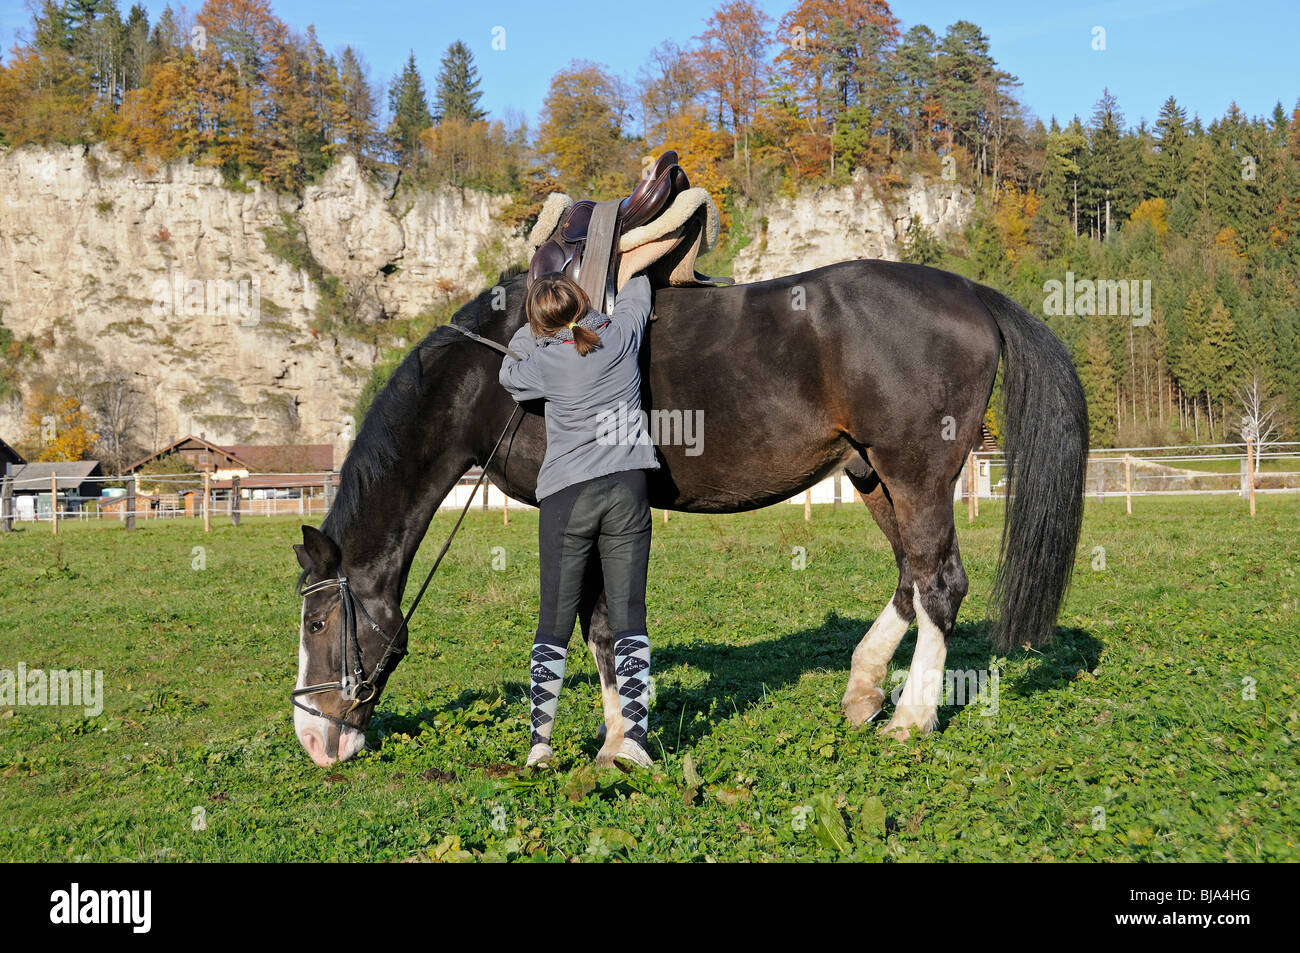 girl is saddling a horse, english style - Stock Image